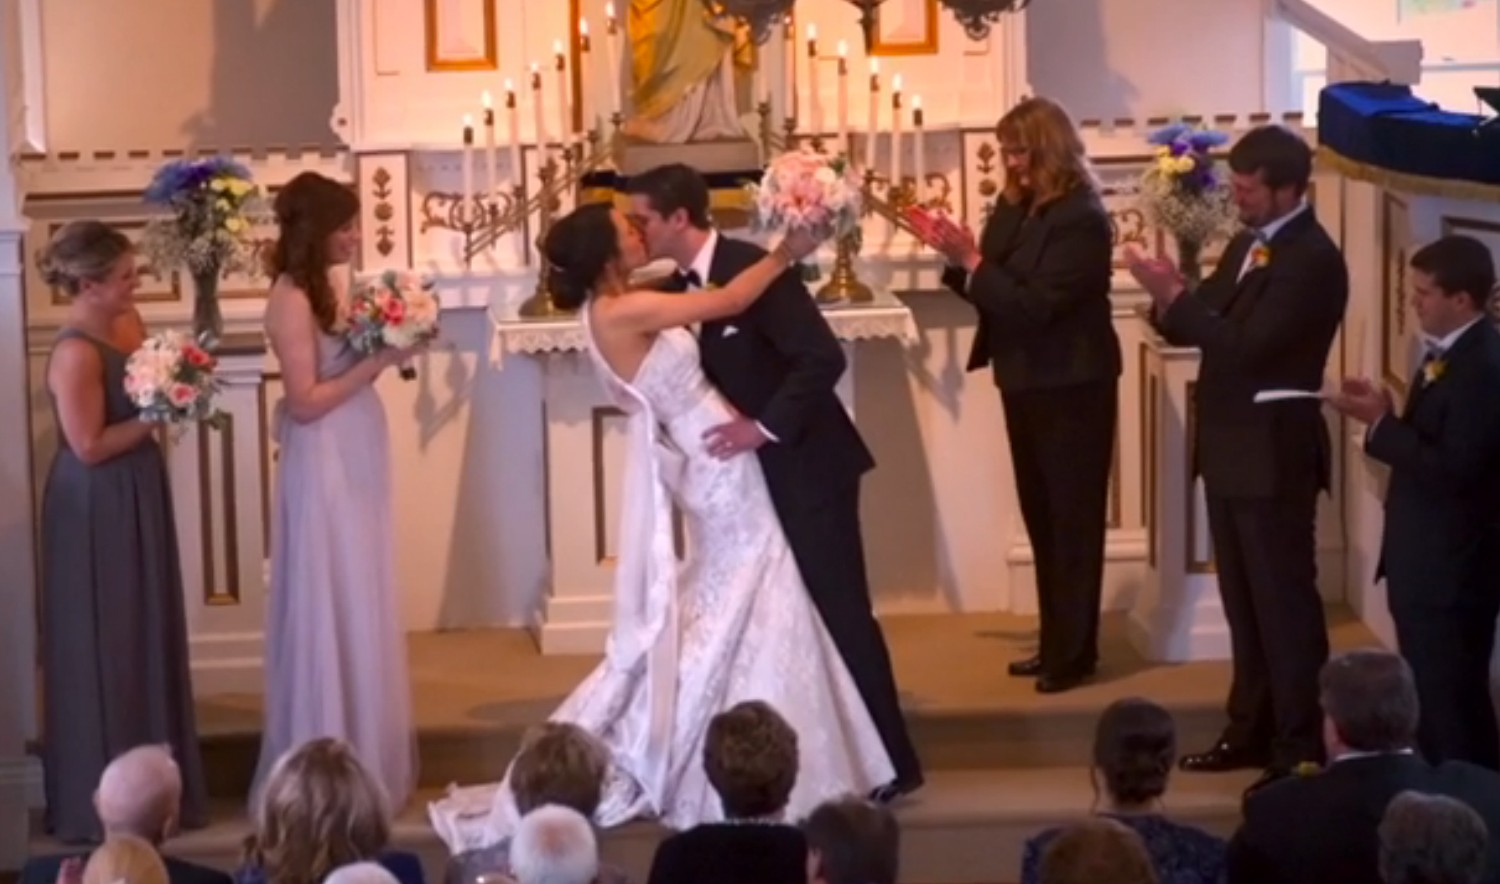 ESPN commenters Kate and Brandon kiss at wedding ceremony